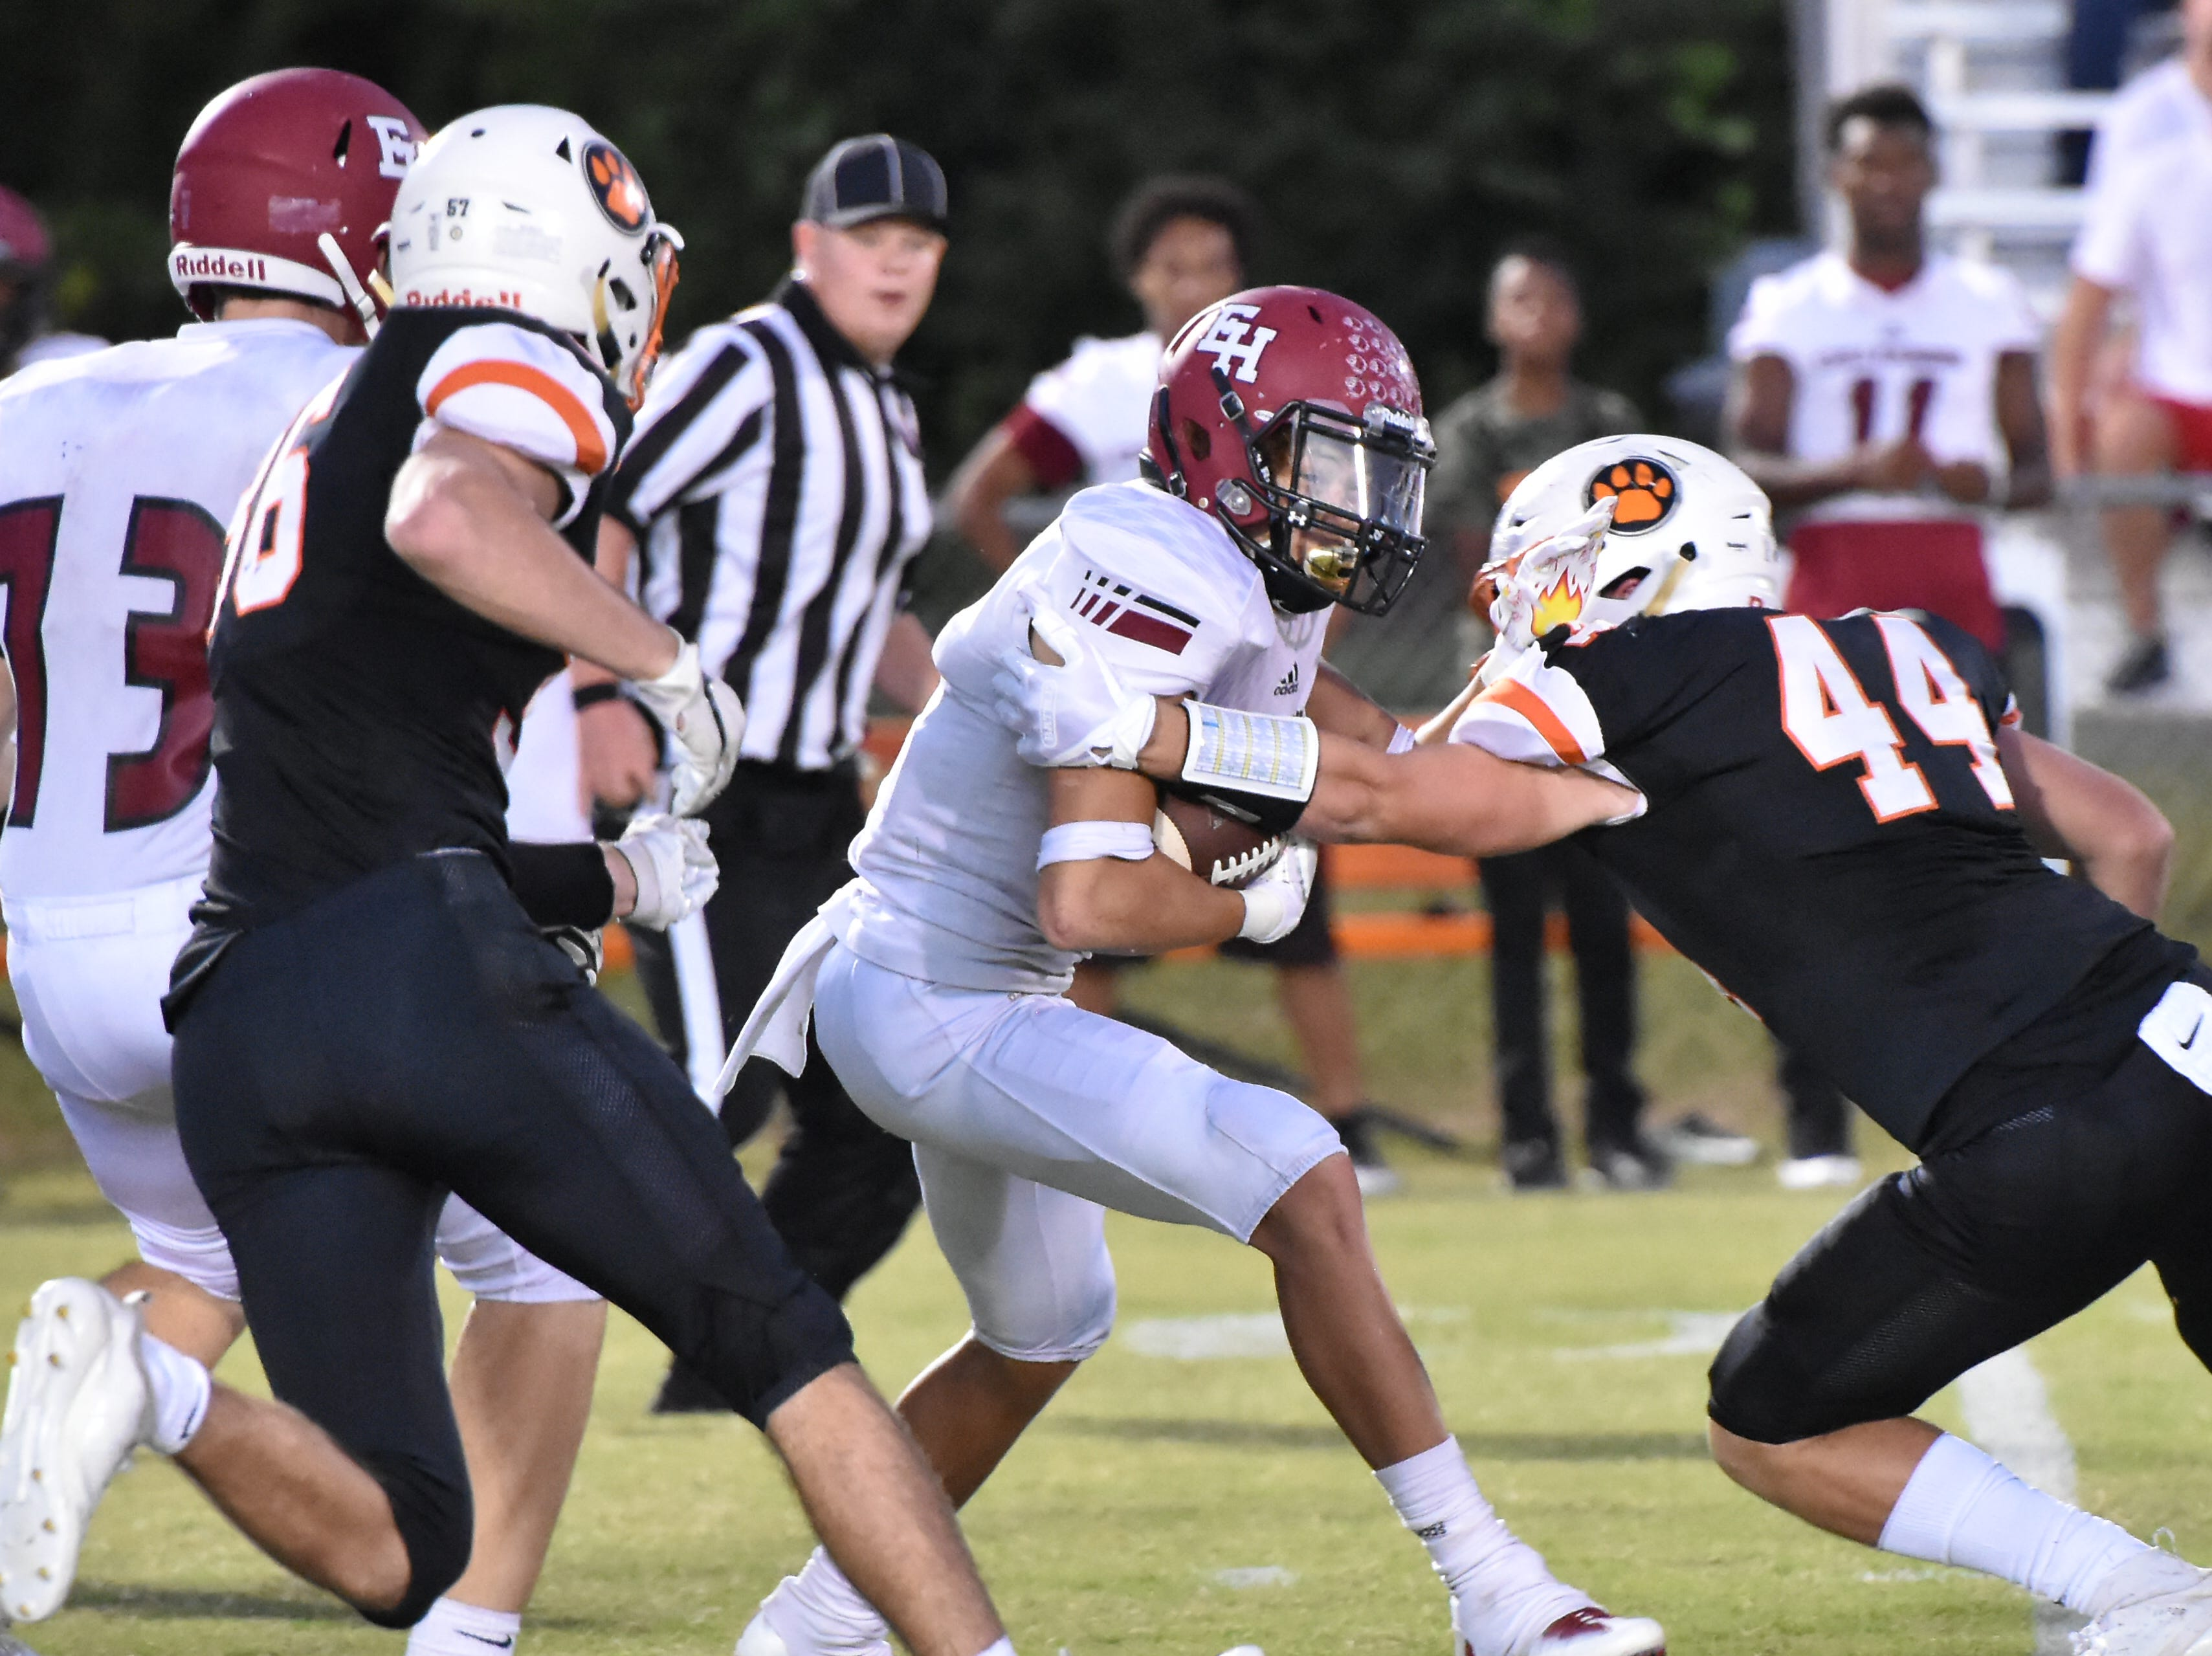 Ezell-Harding halfback Braxton Coleman prepares to be tackled by MTCS's Trey Harris Friday night.